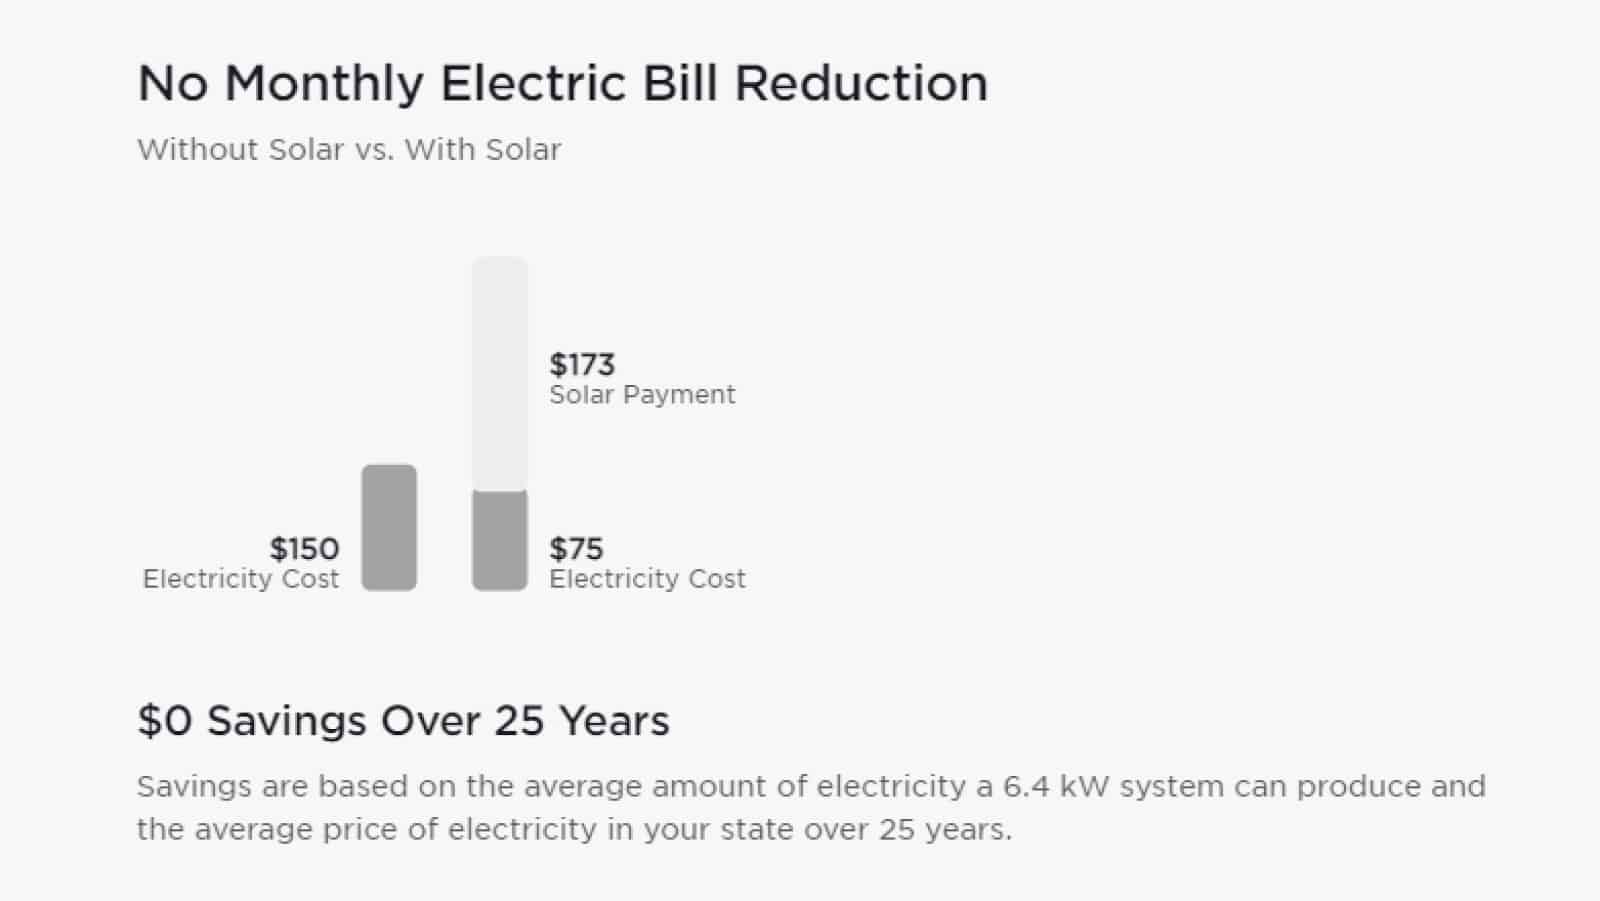 tesla solar roof configurator showing no monthly electric bill reduction